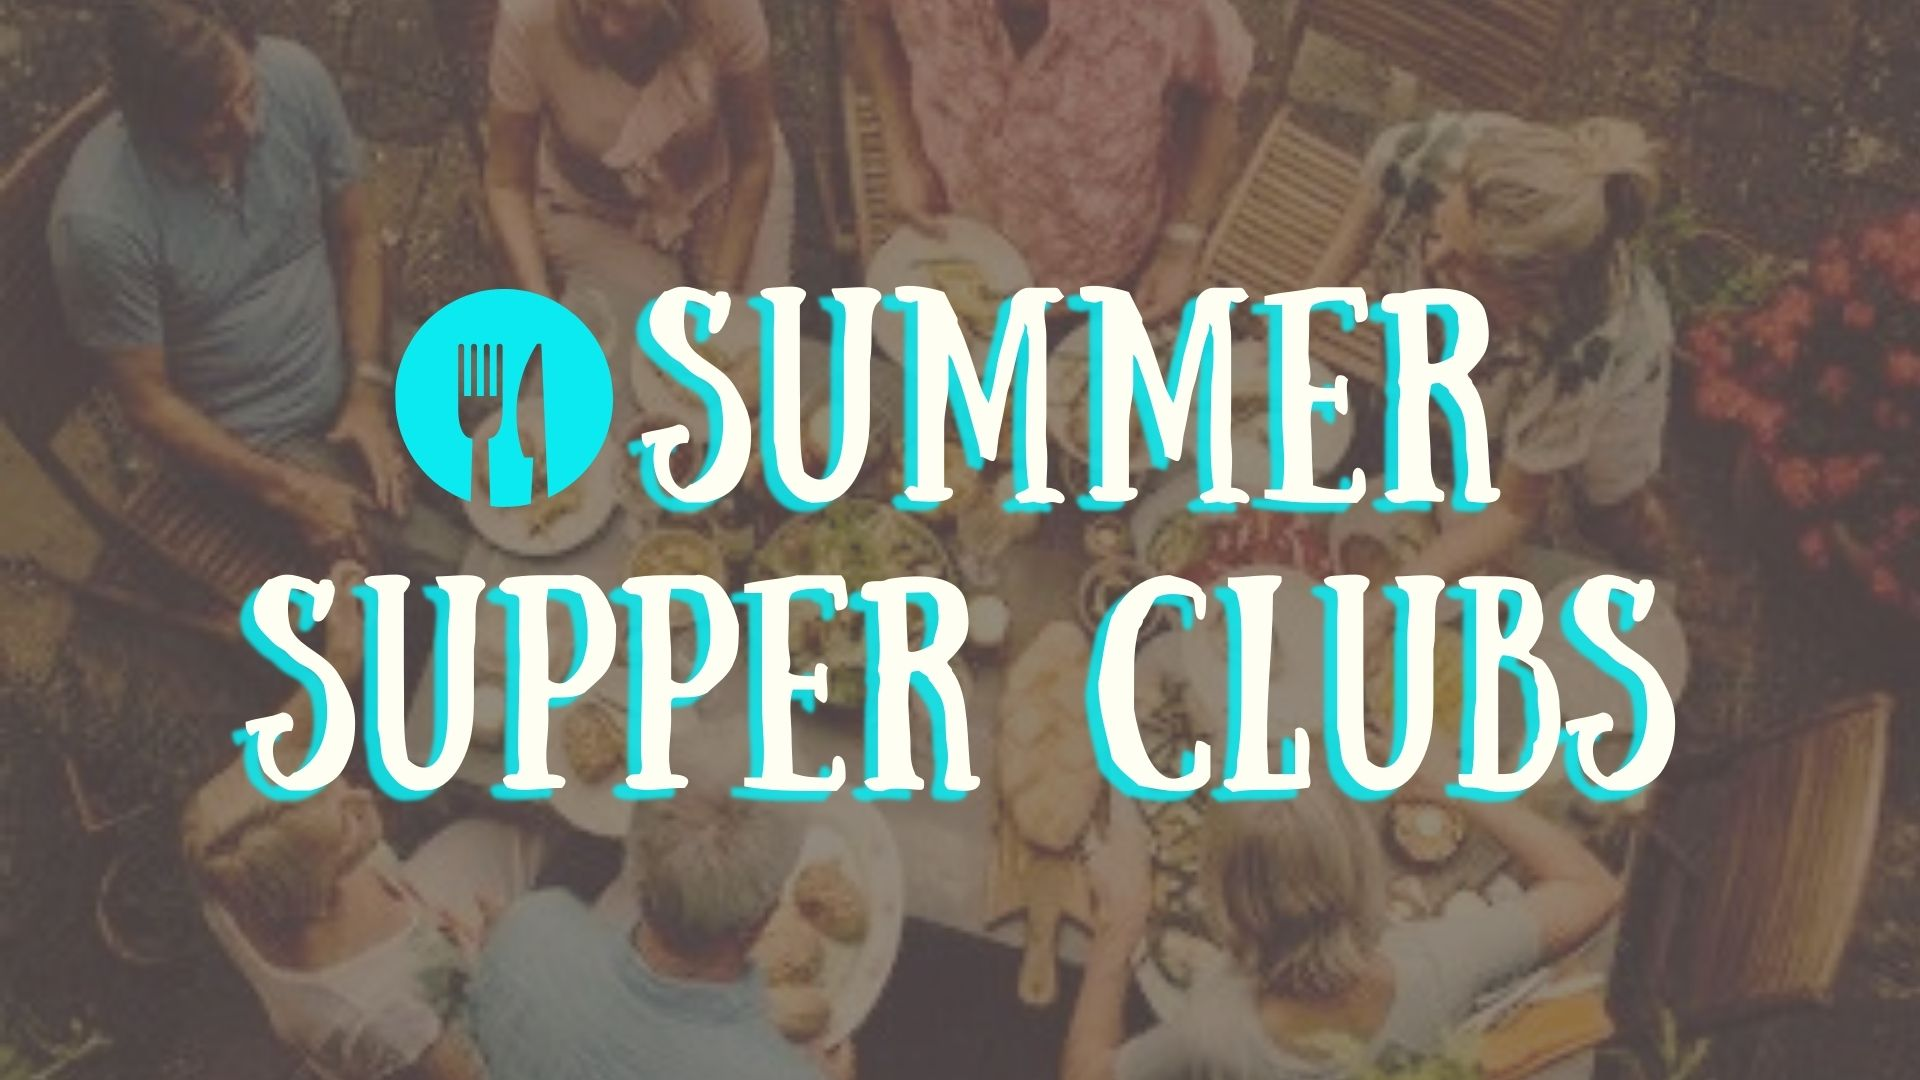 2021 Supper Clubs image